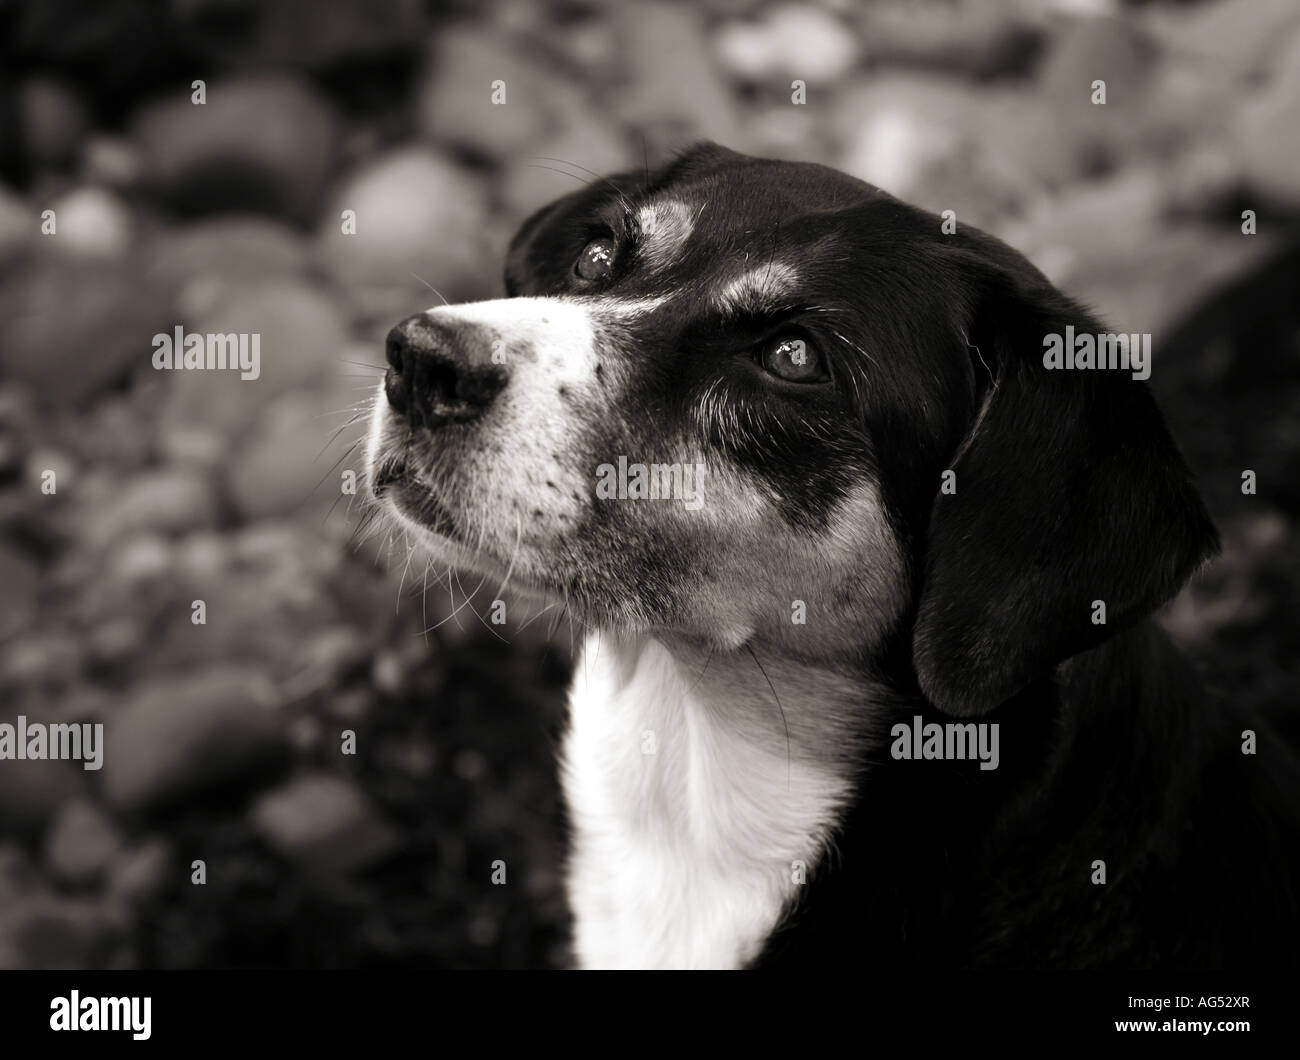 Black and white image of an adult dog stock image